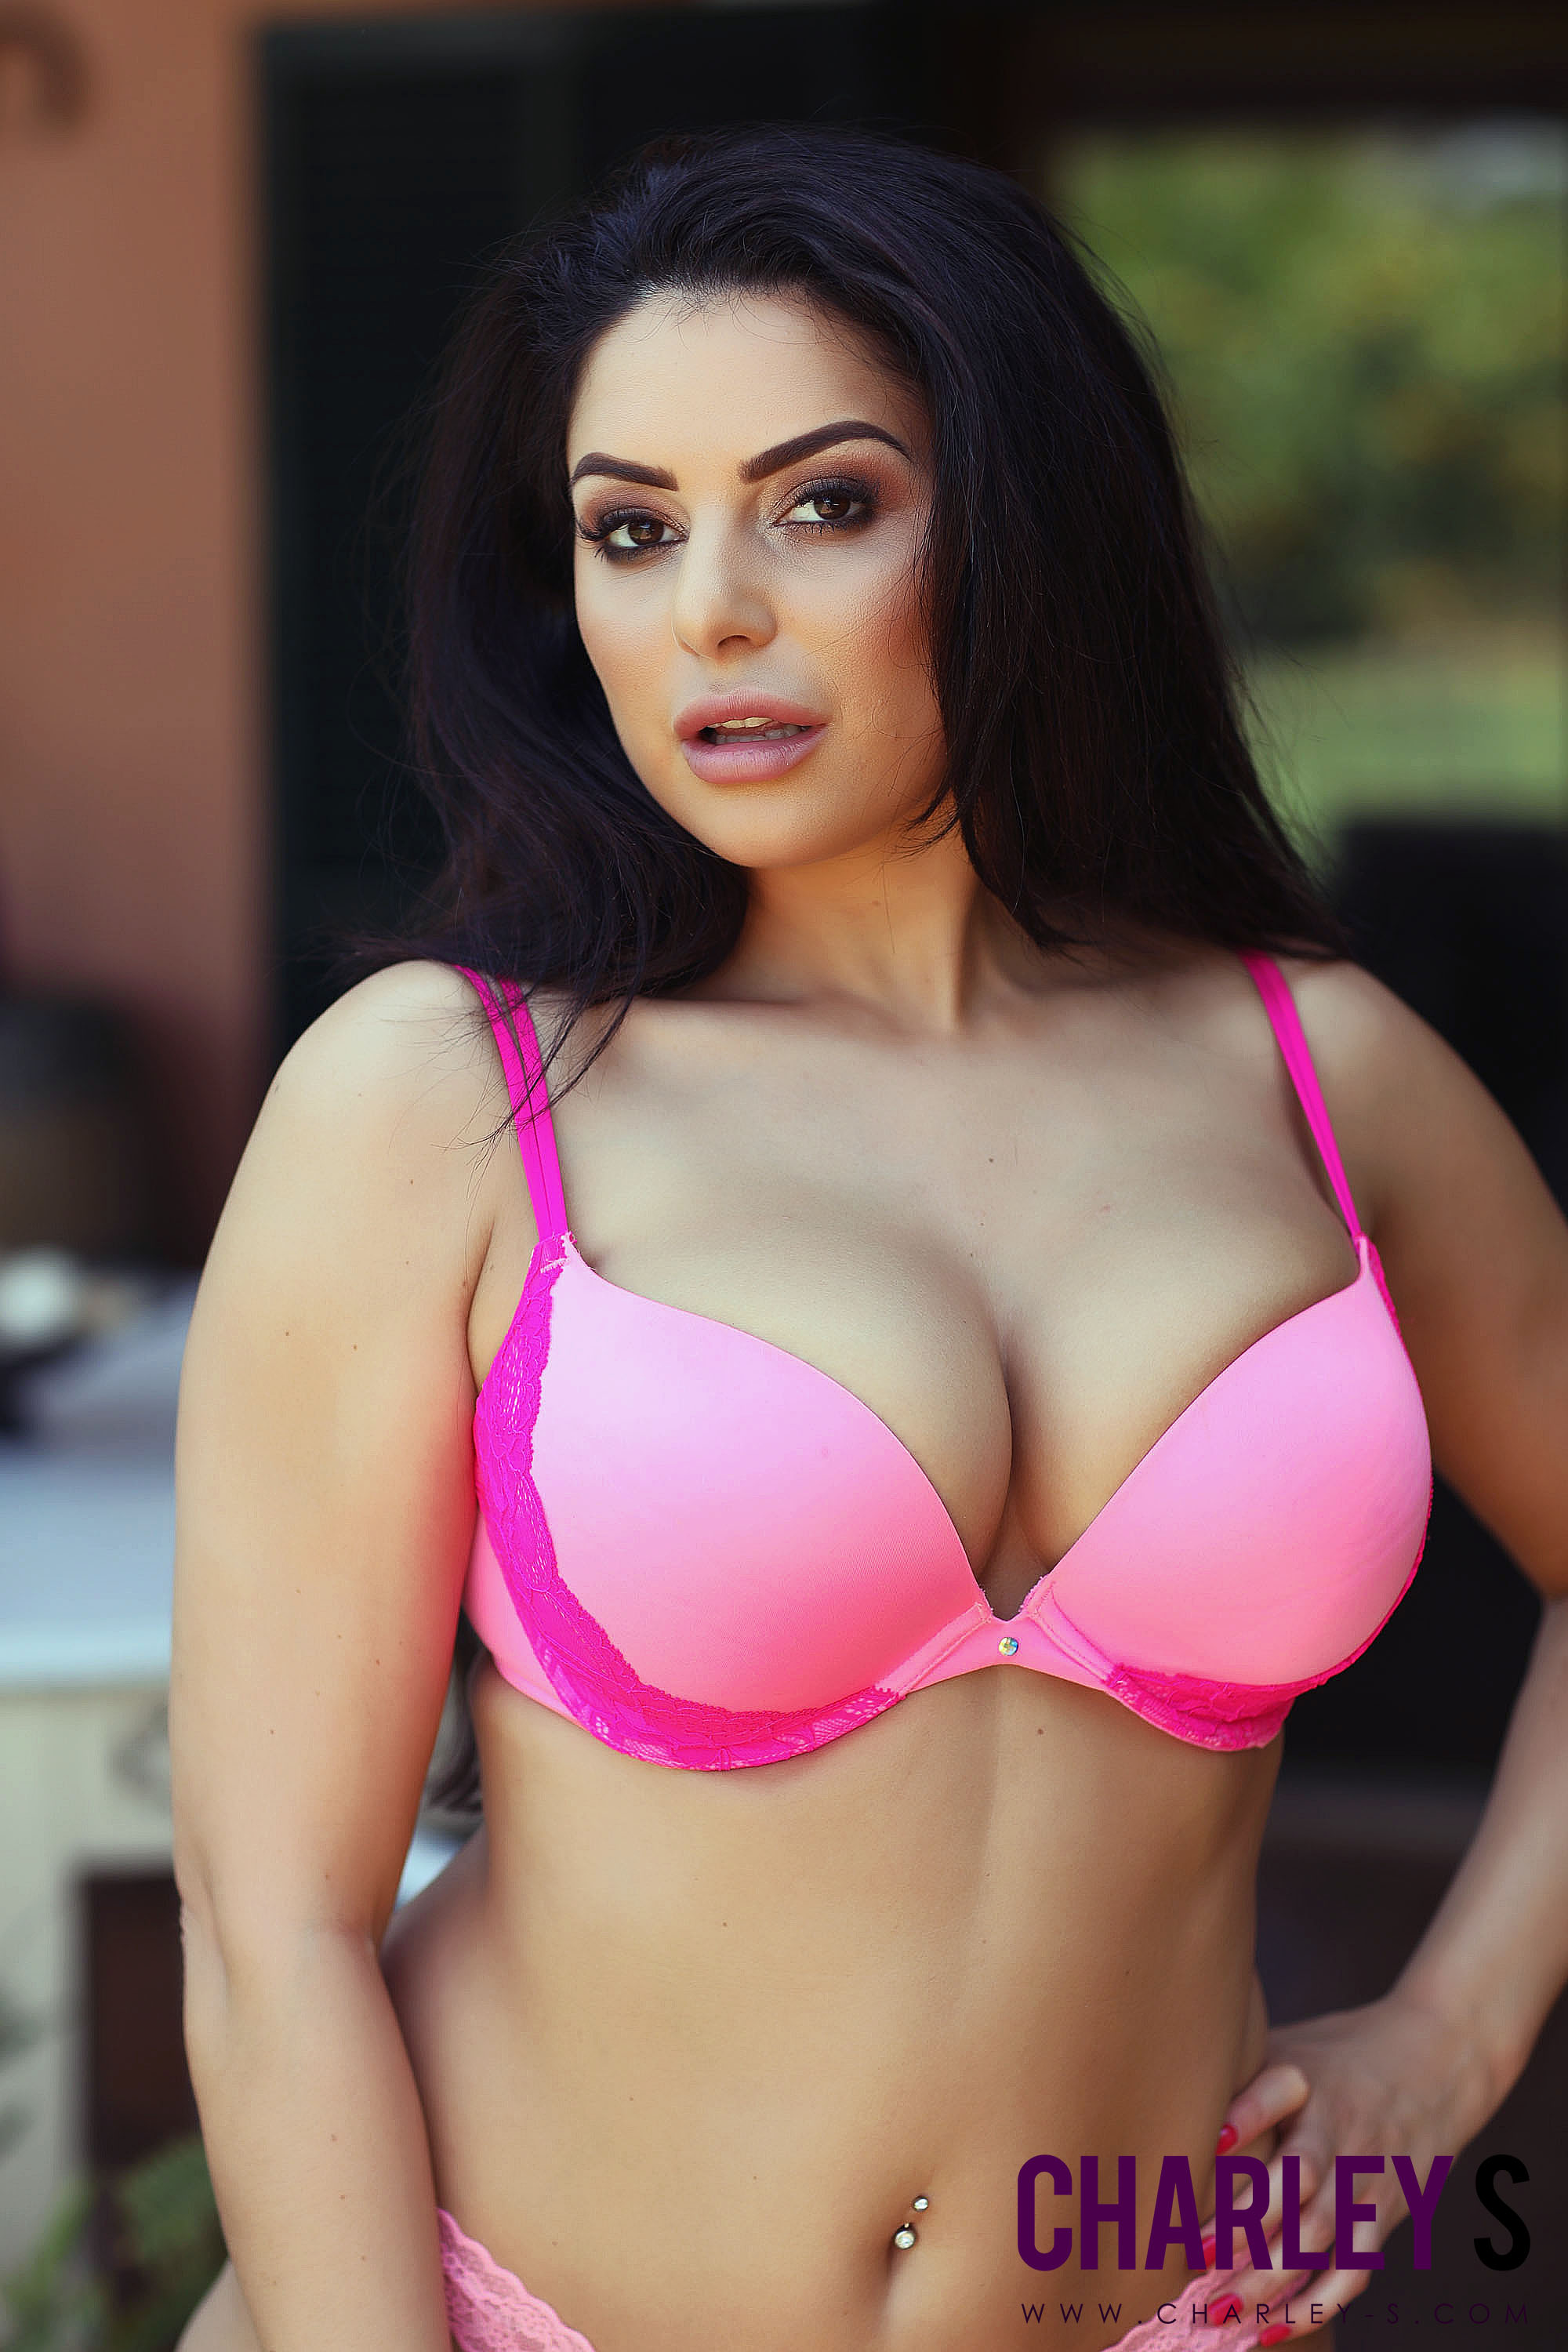 Charley S Big Boobs in a Pink Bra